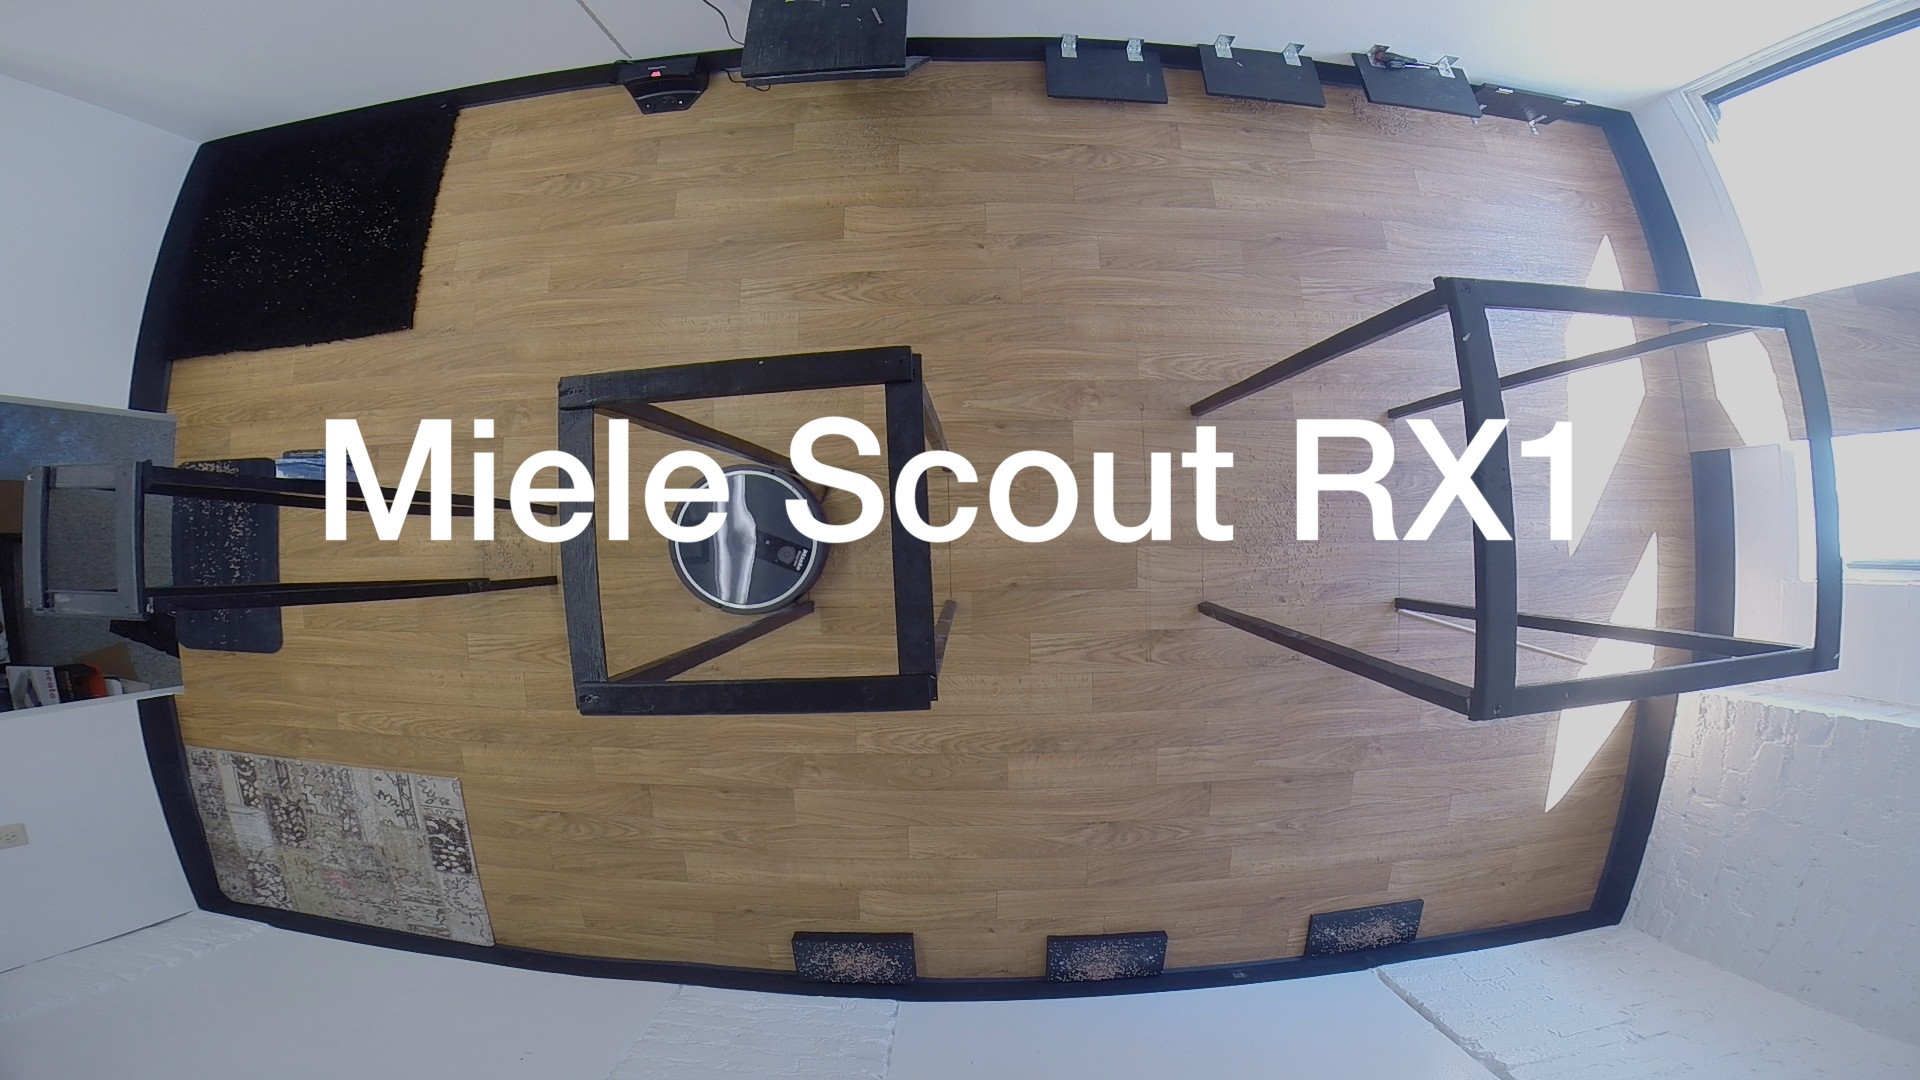 miele vacuum hardwood floor attachment of miele scout rx1 robot vacuum cleaner review reviewed com robot vacuums for 1242911077001 4145274019001 miele scout rx1 still